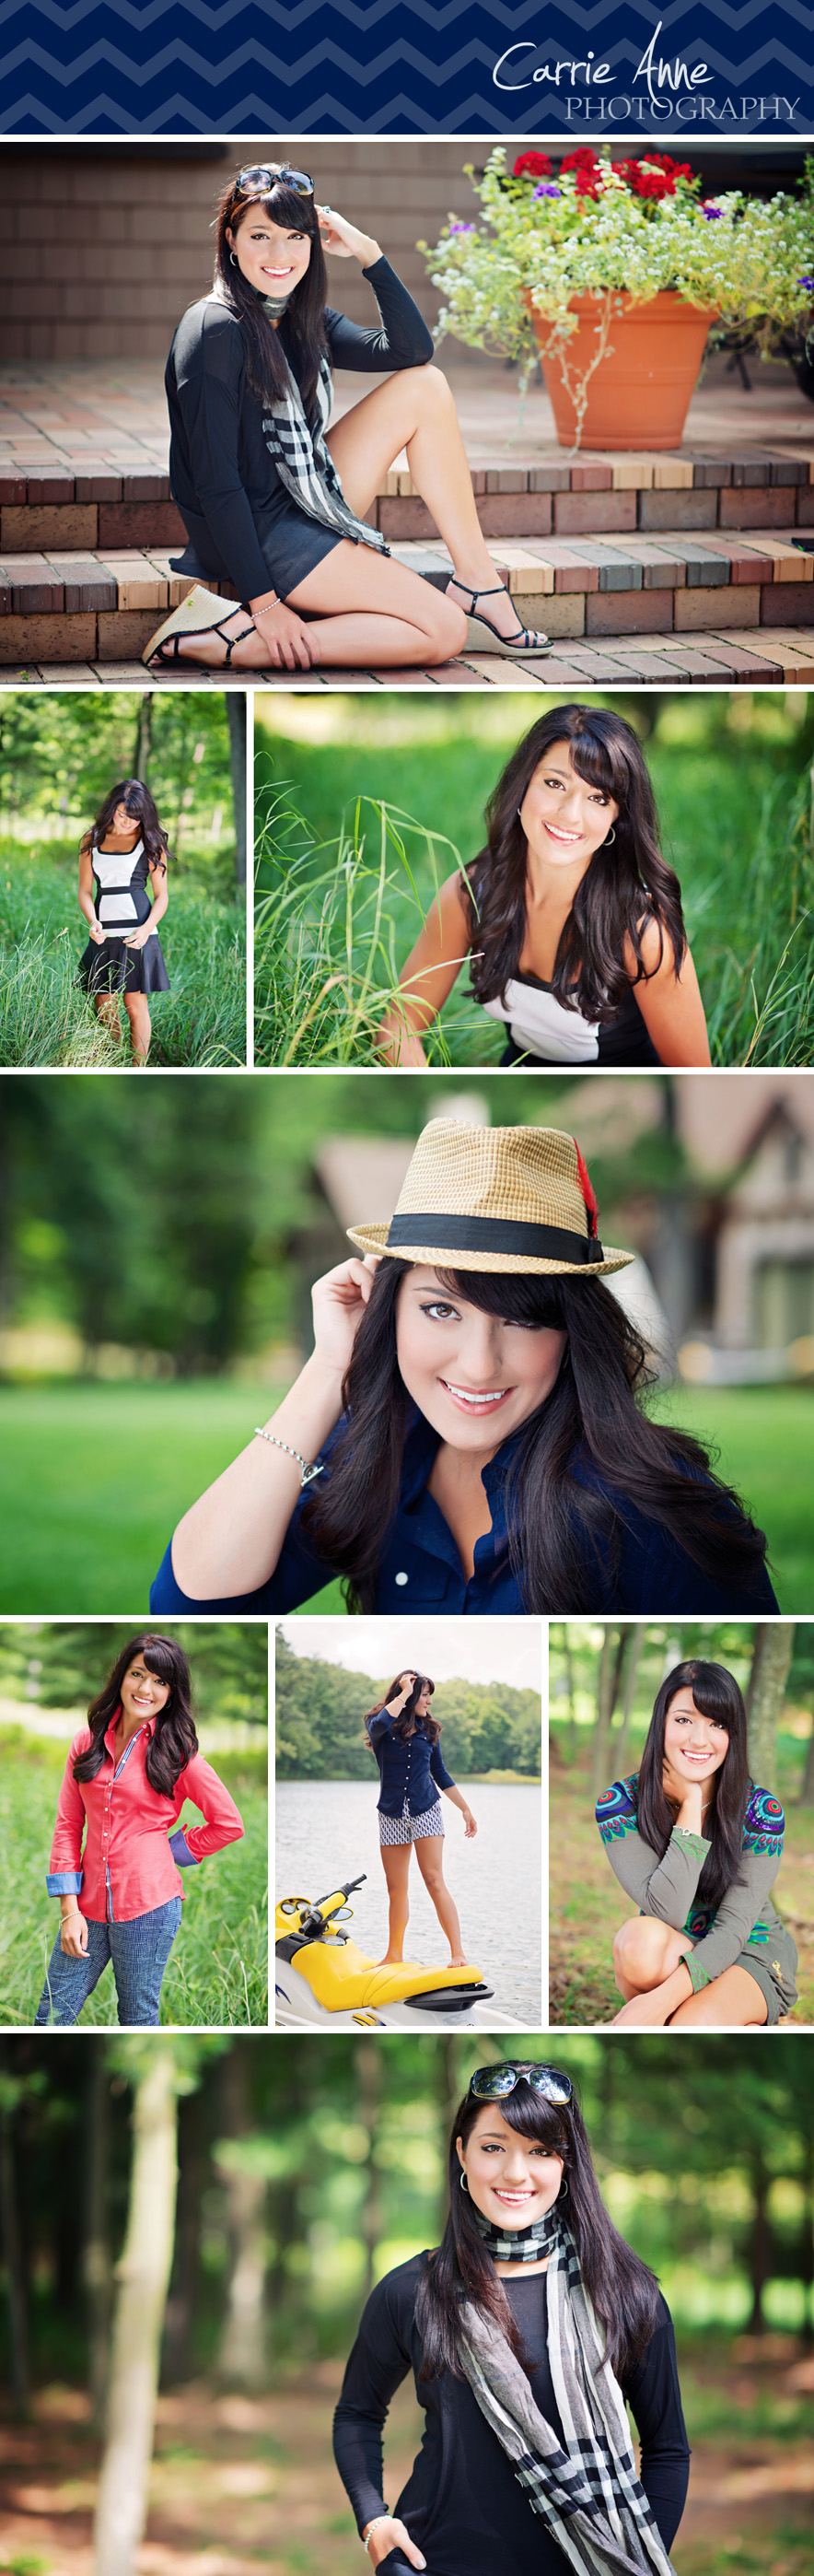 Grand Rapids Senior Photographer-Carrie Anne Photography-Ultimate Session